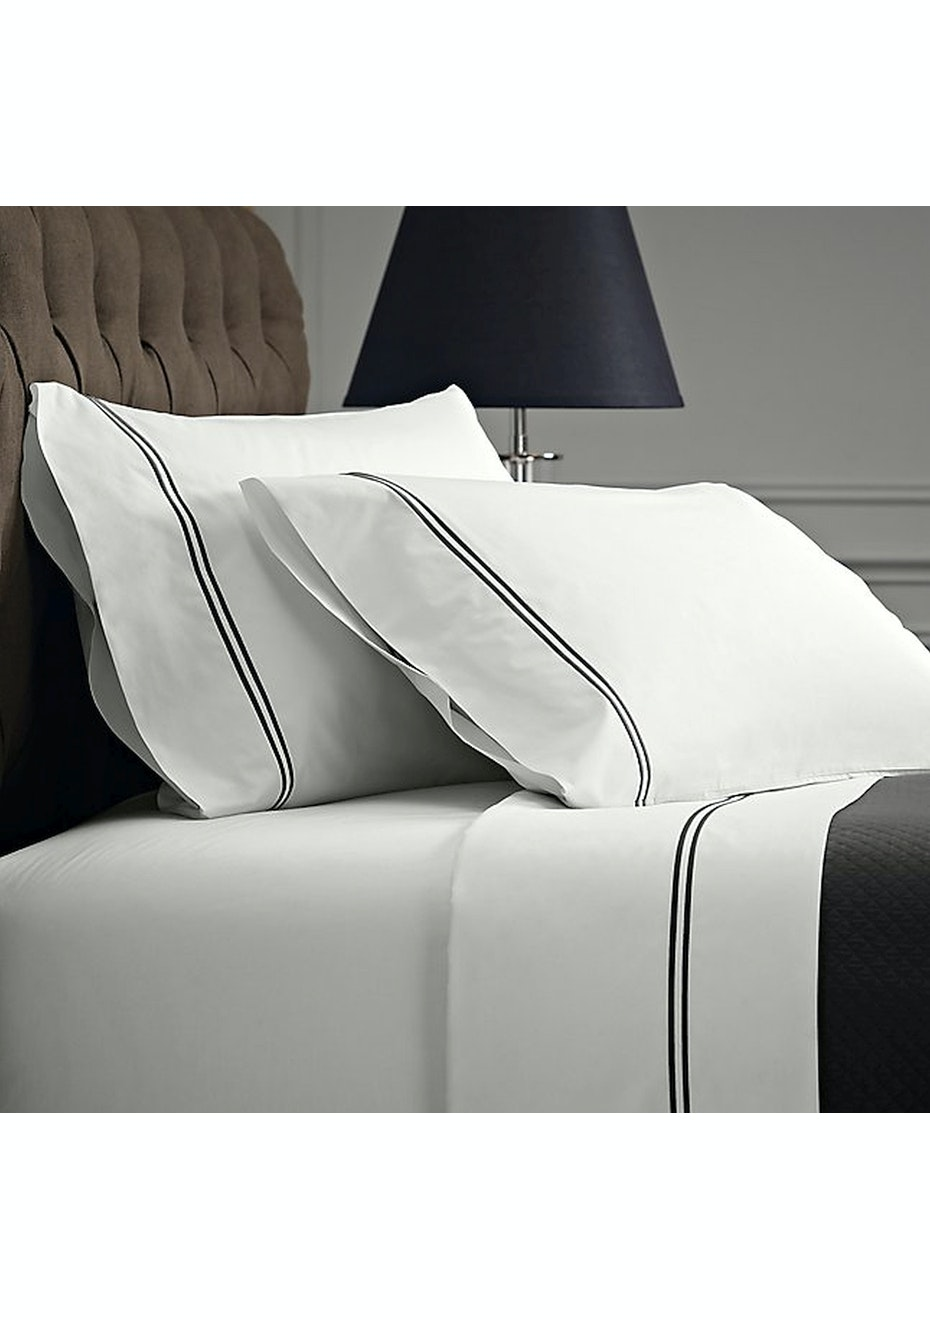 Style & Co 1000 Thread count Egyptian Cotton Hotel Collection Sorrento Sheet sets Queen White